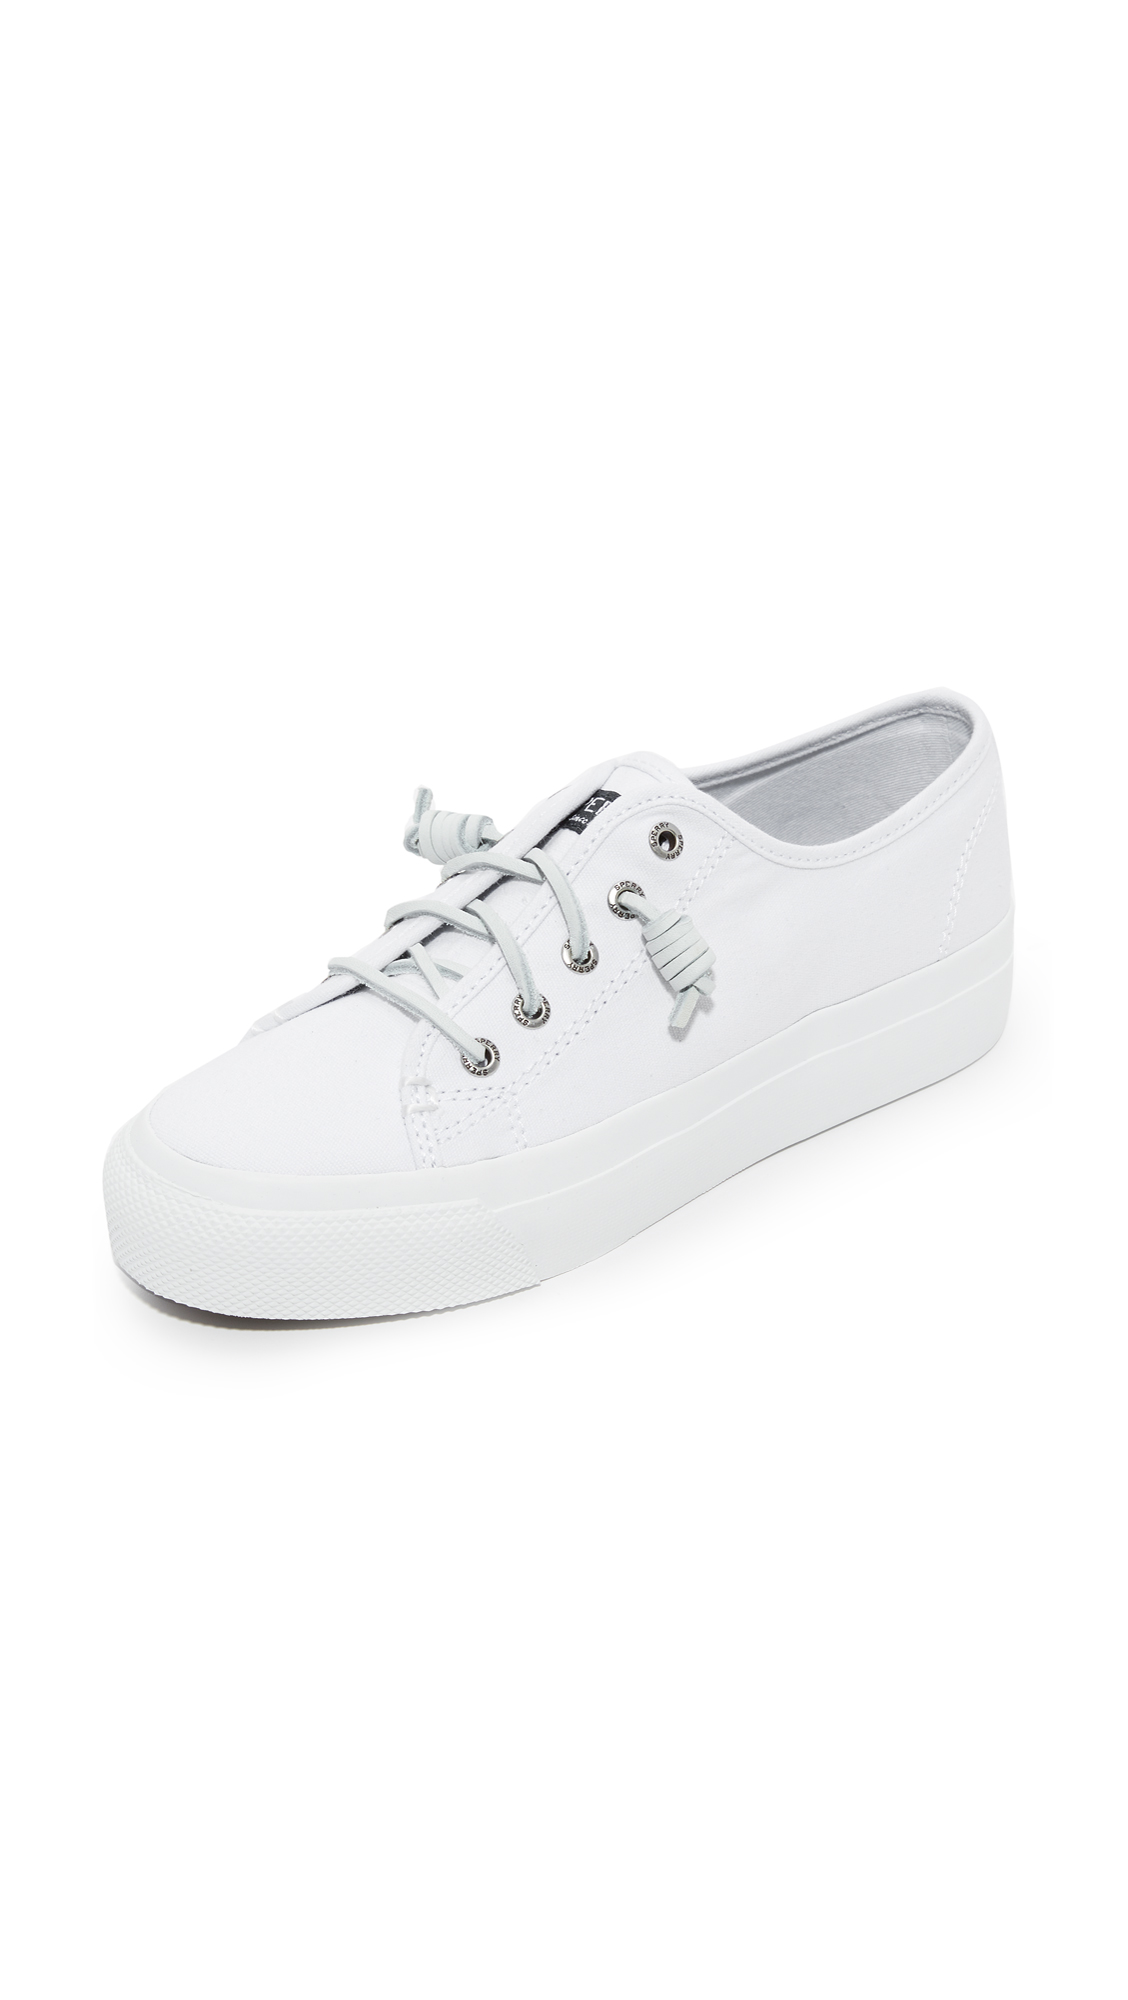 Sperry Sky Sail Platform Sneakers - White